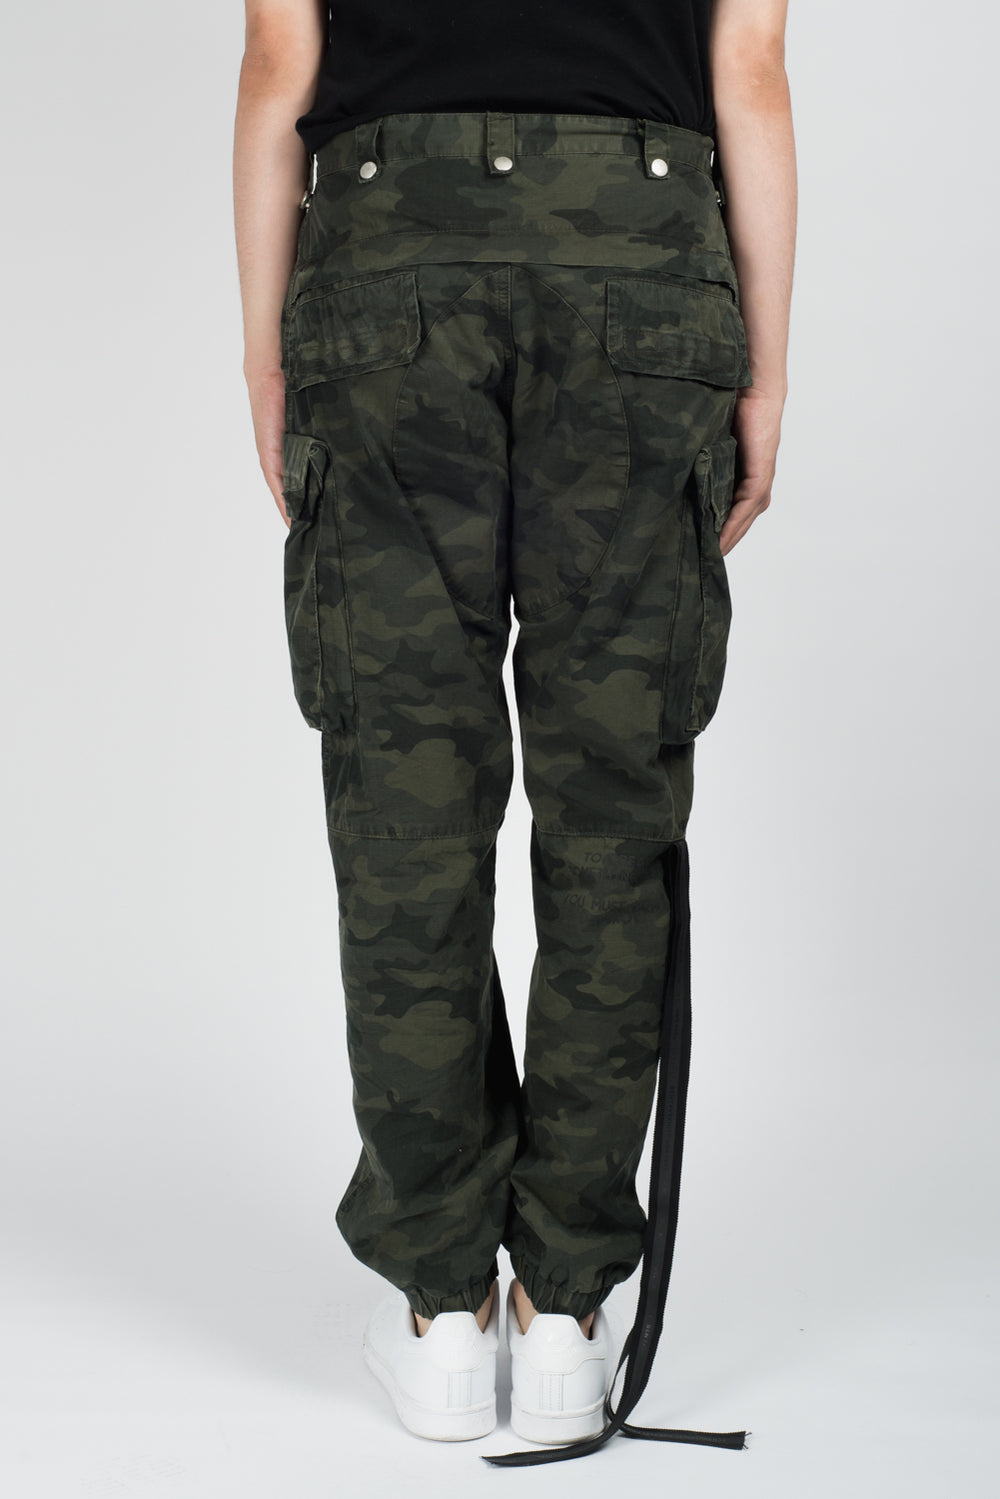 UNRAVEL Cotton Ripstop Cargo Pants In Camo